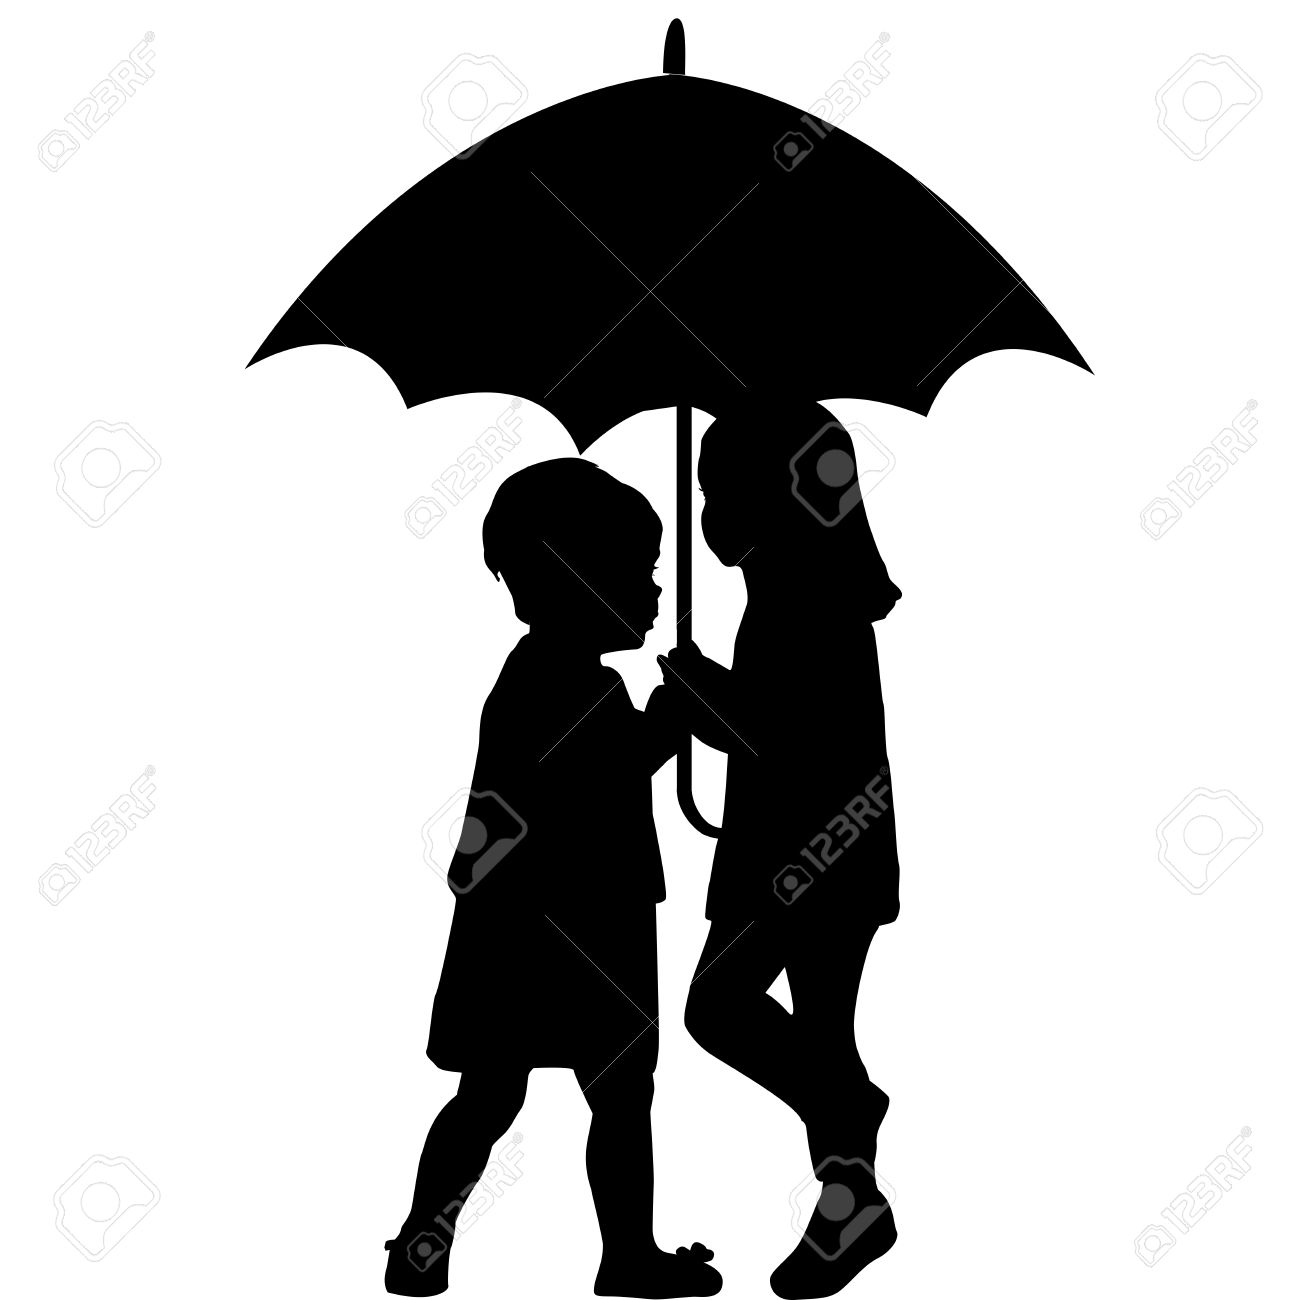 1300x1300 Clipart Little Girl Sitting With Umbrella Silhouette